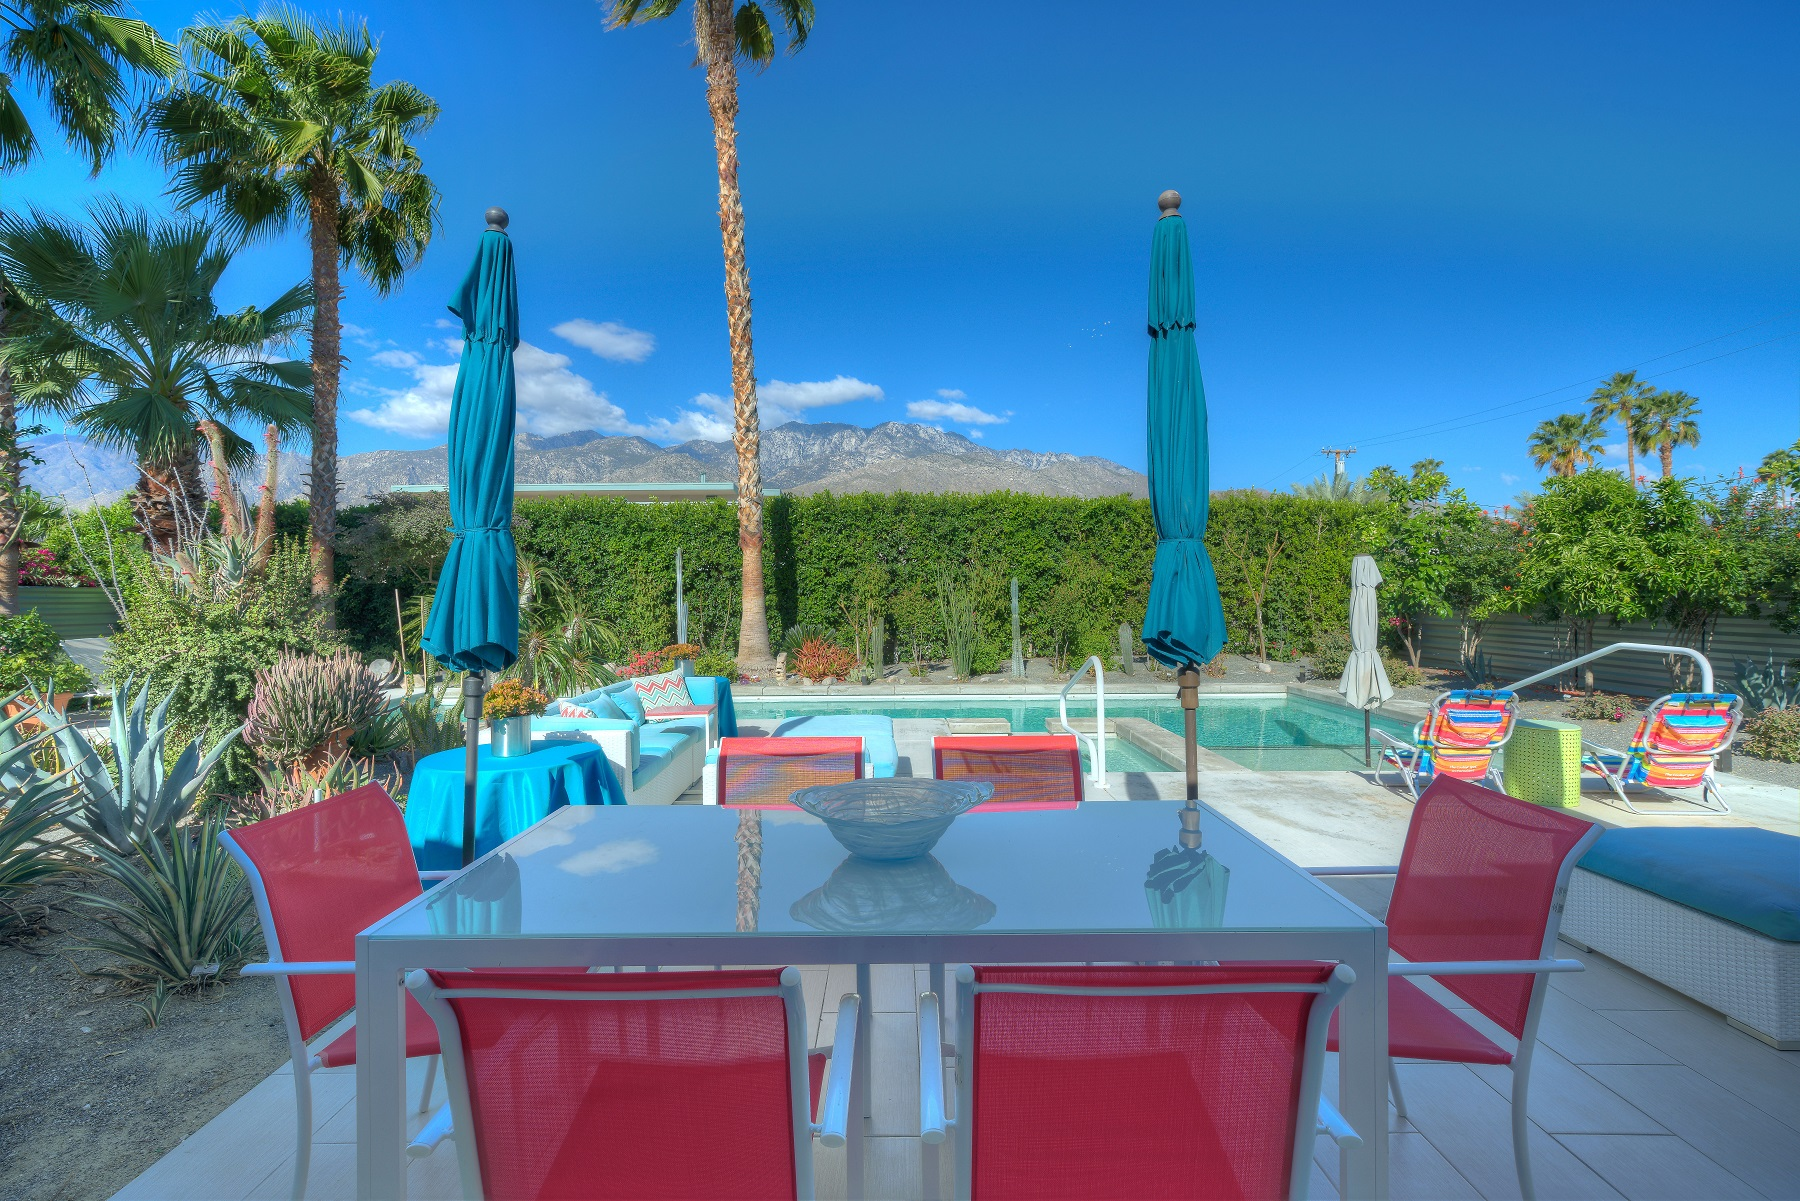 Is Now A Good Time to Sell My Palm Springs House?